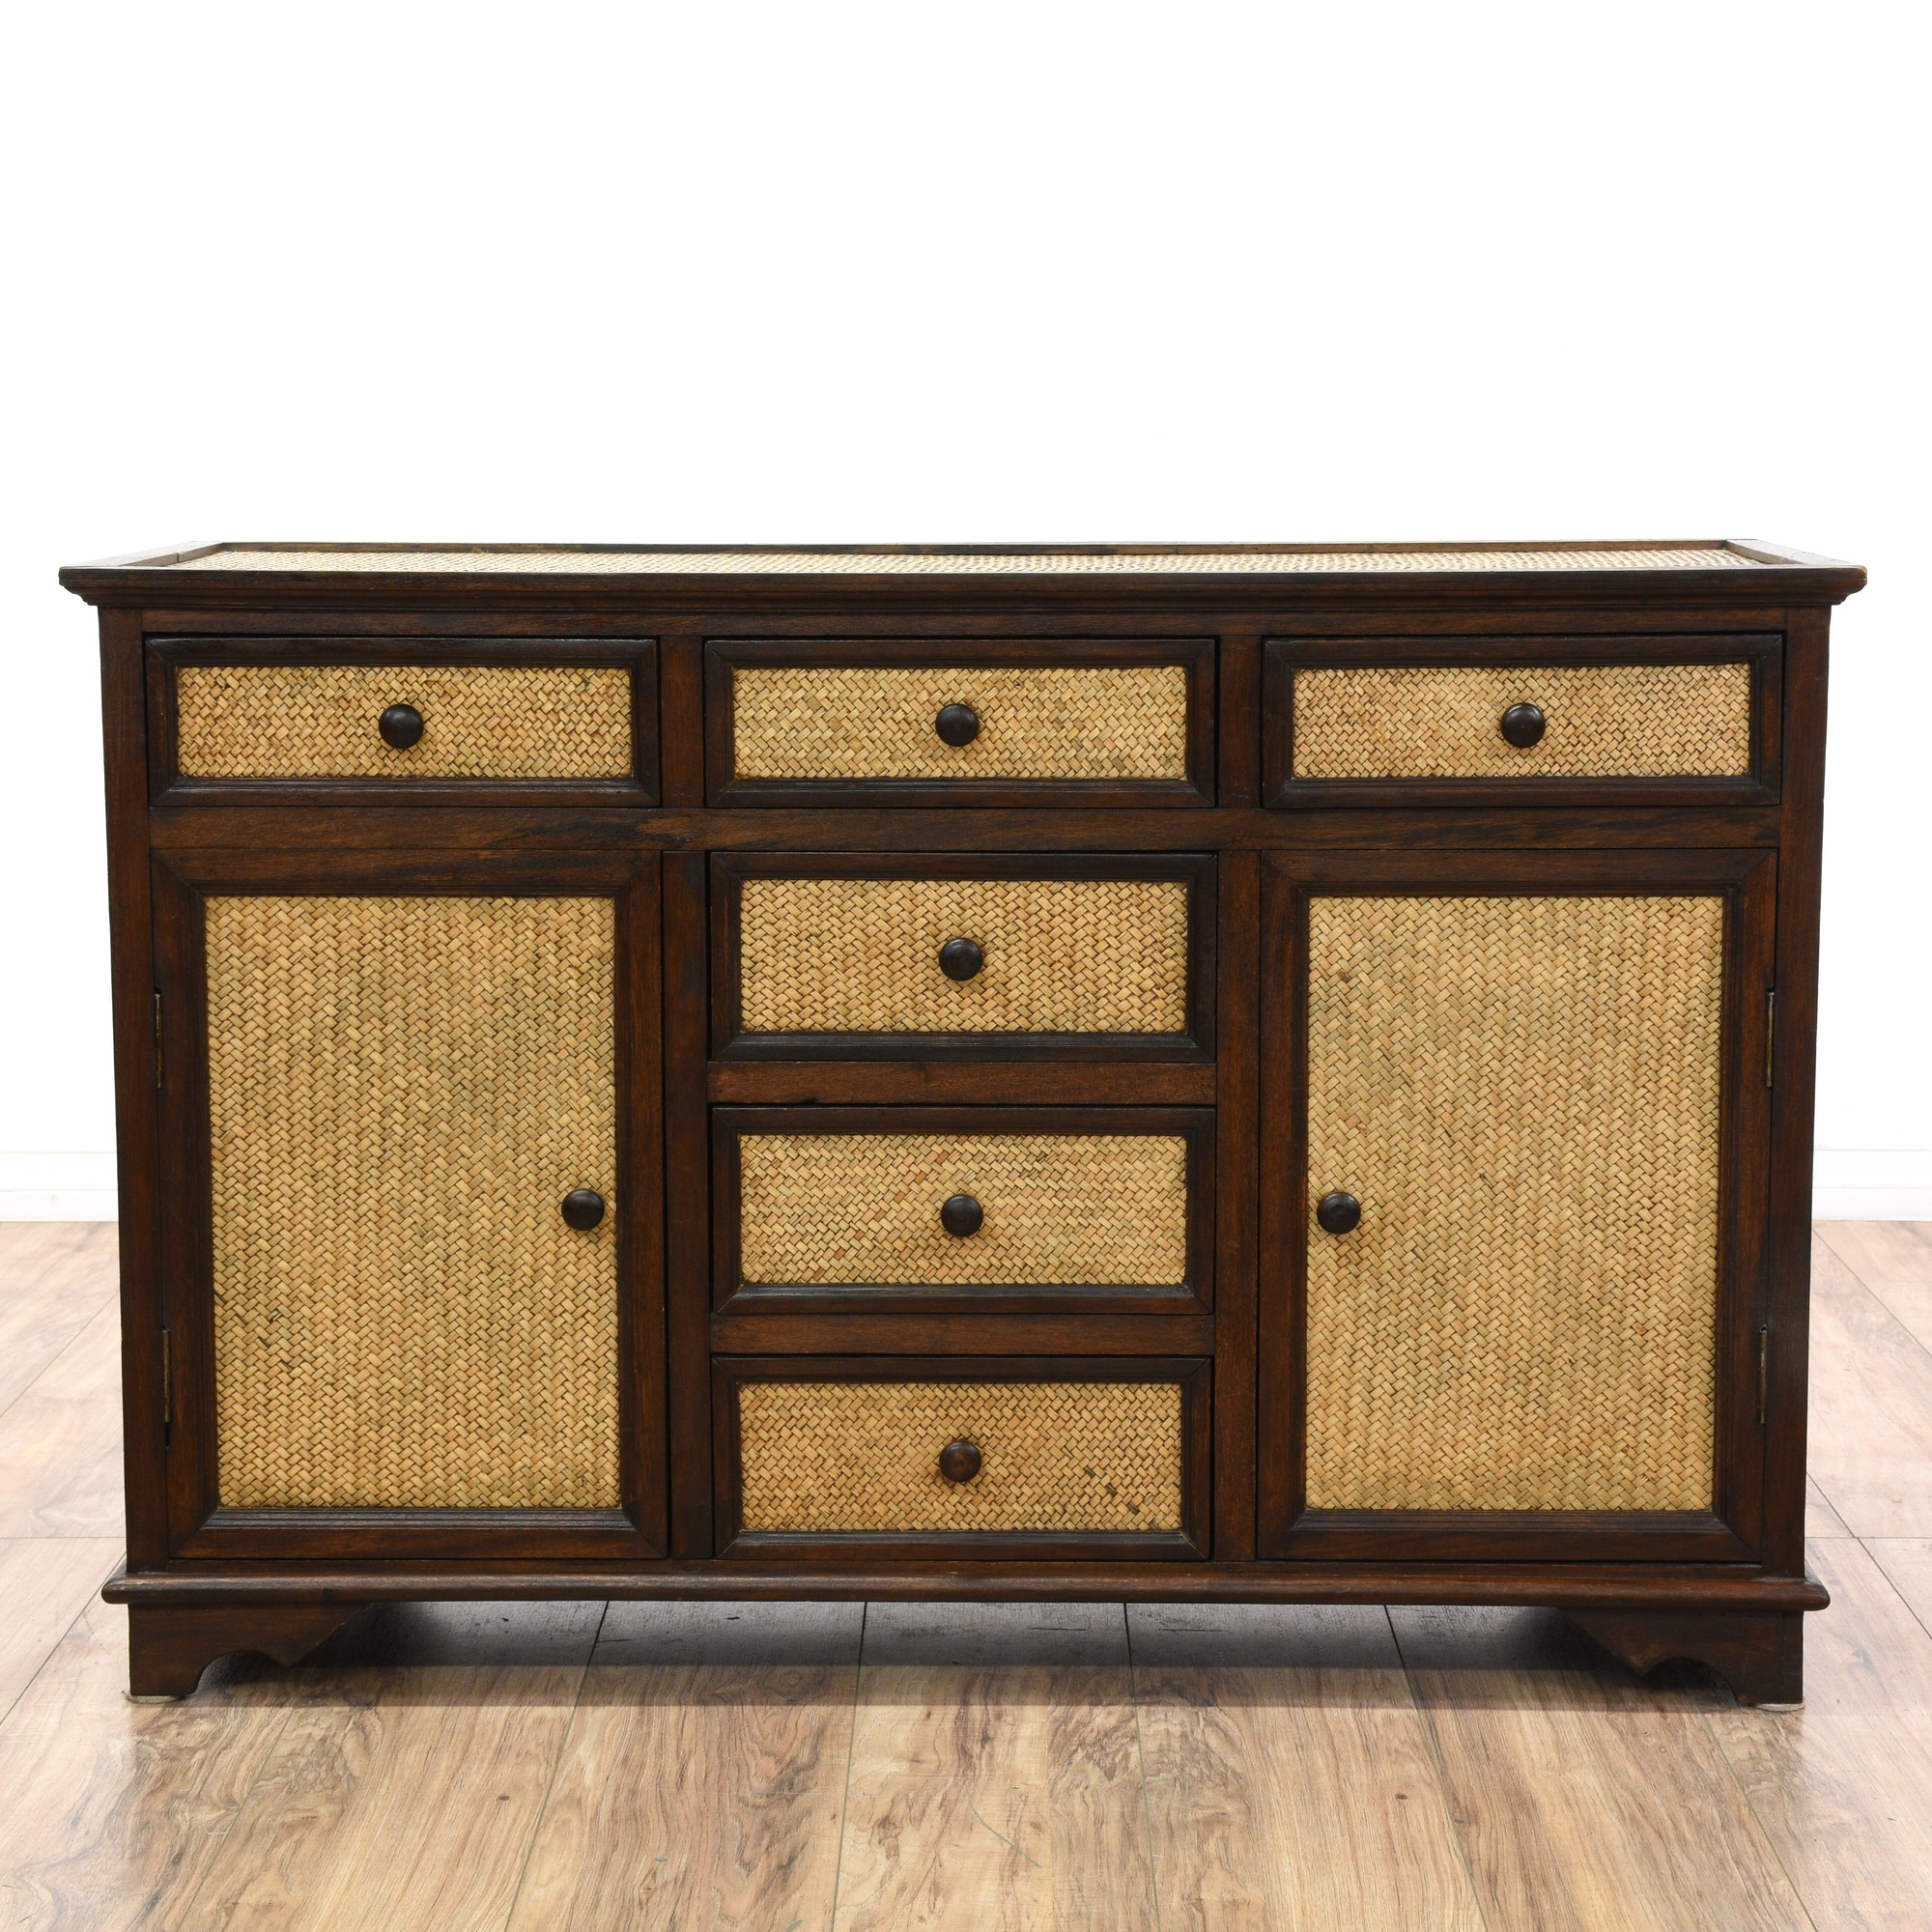 Wood rattan dresser buffet sideboard loveseat vintage for Sideboard rattan